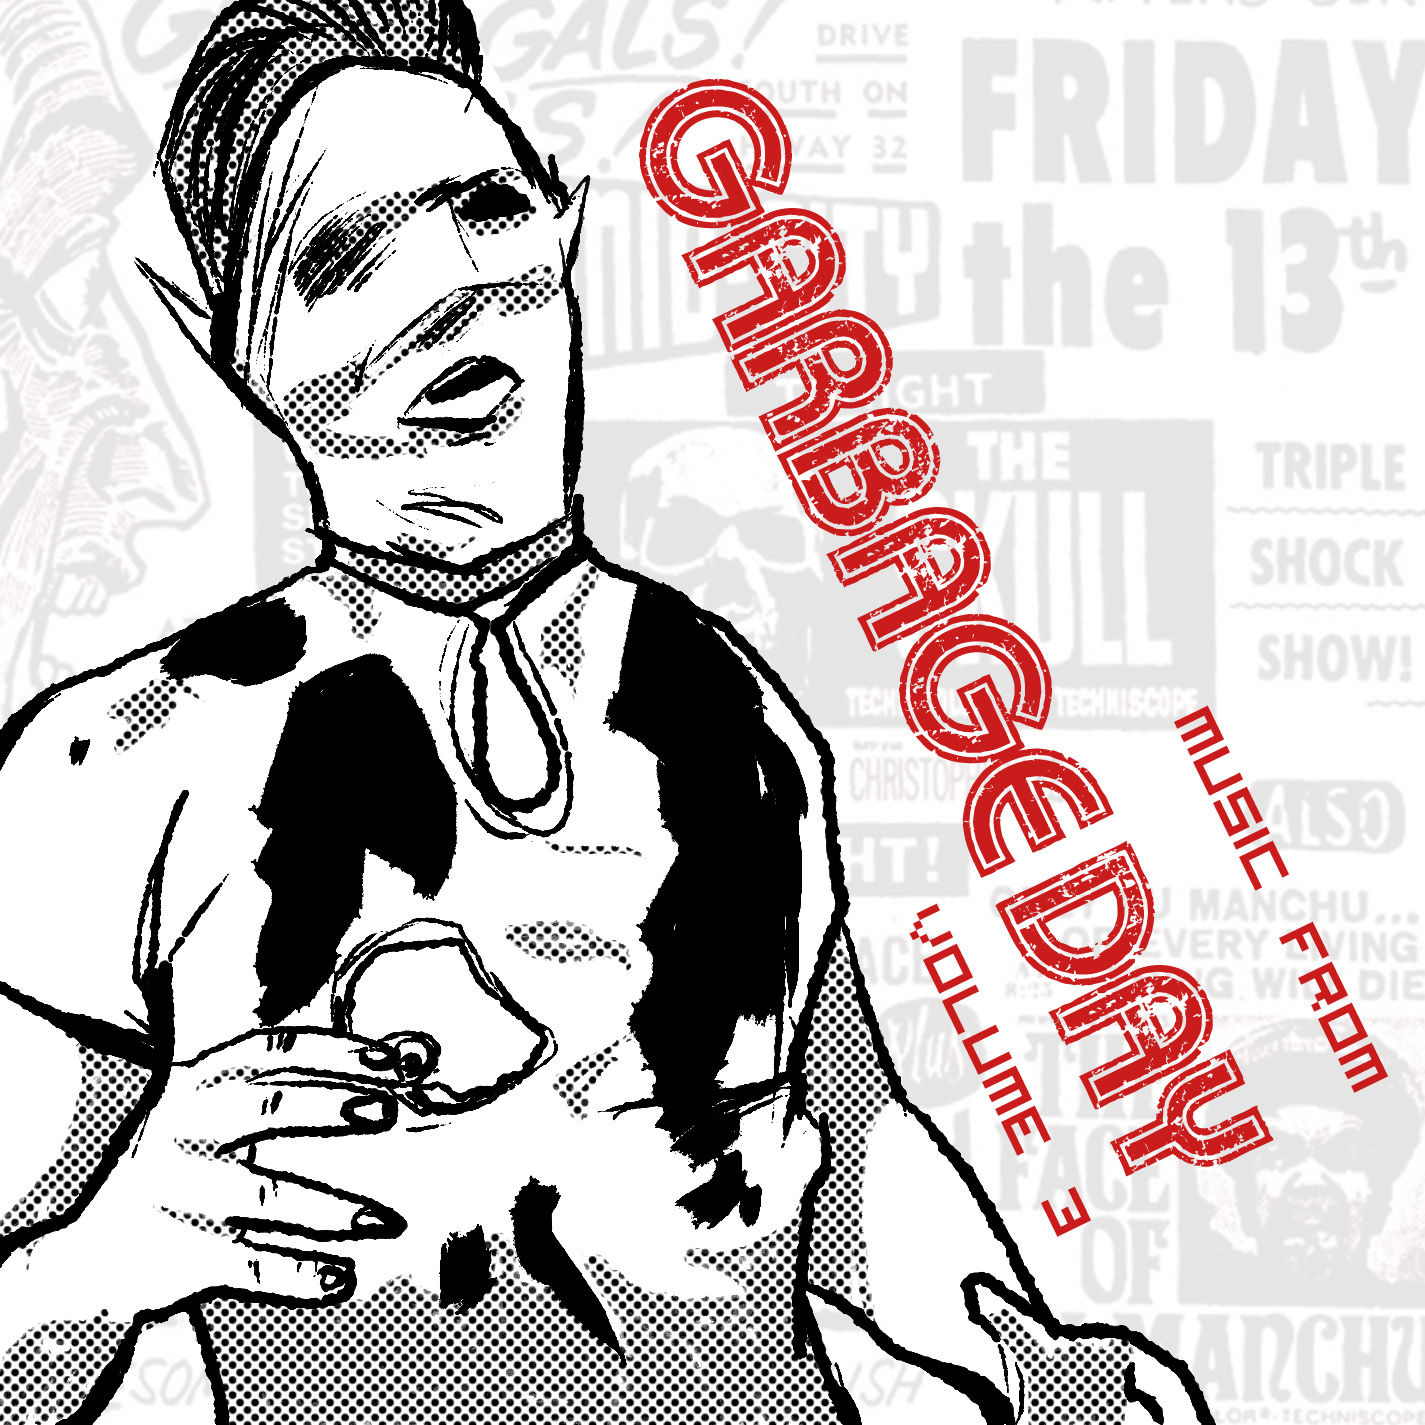 Music from Garbage Day vol. 3